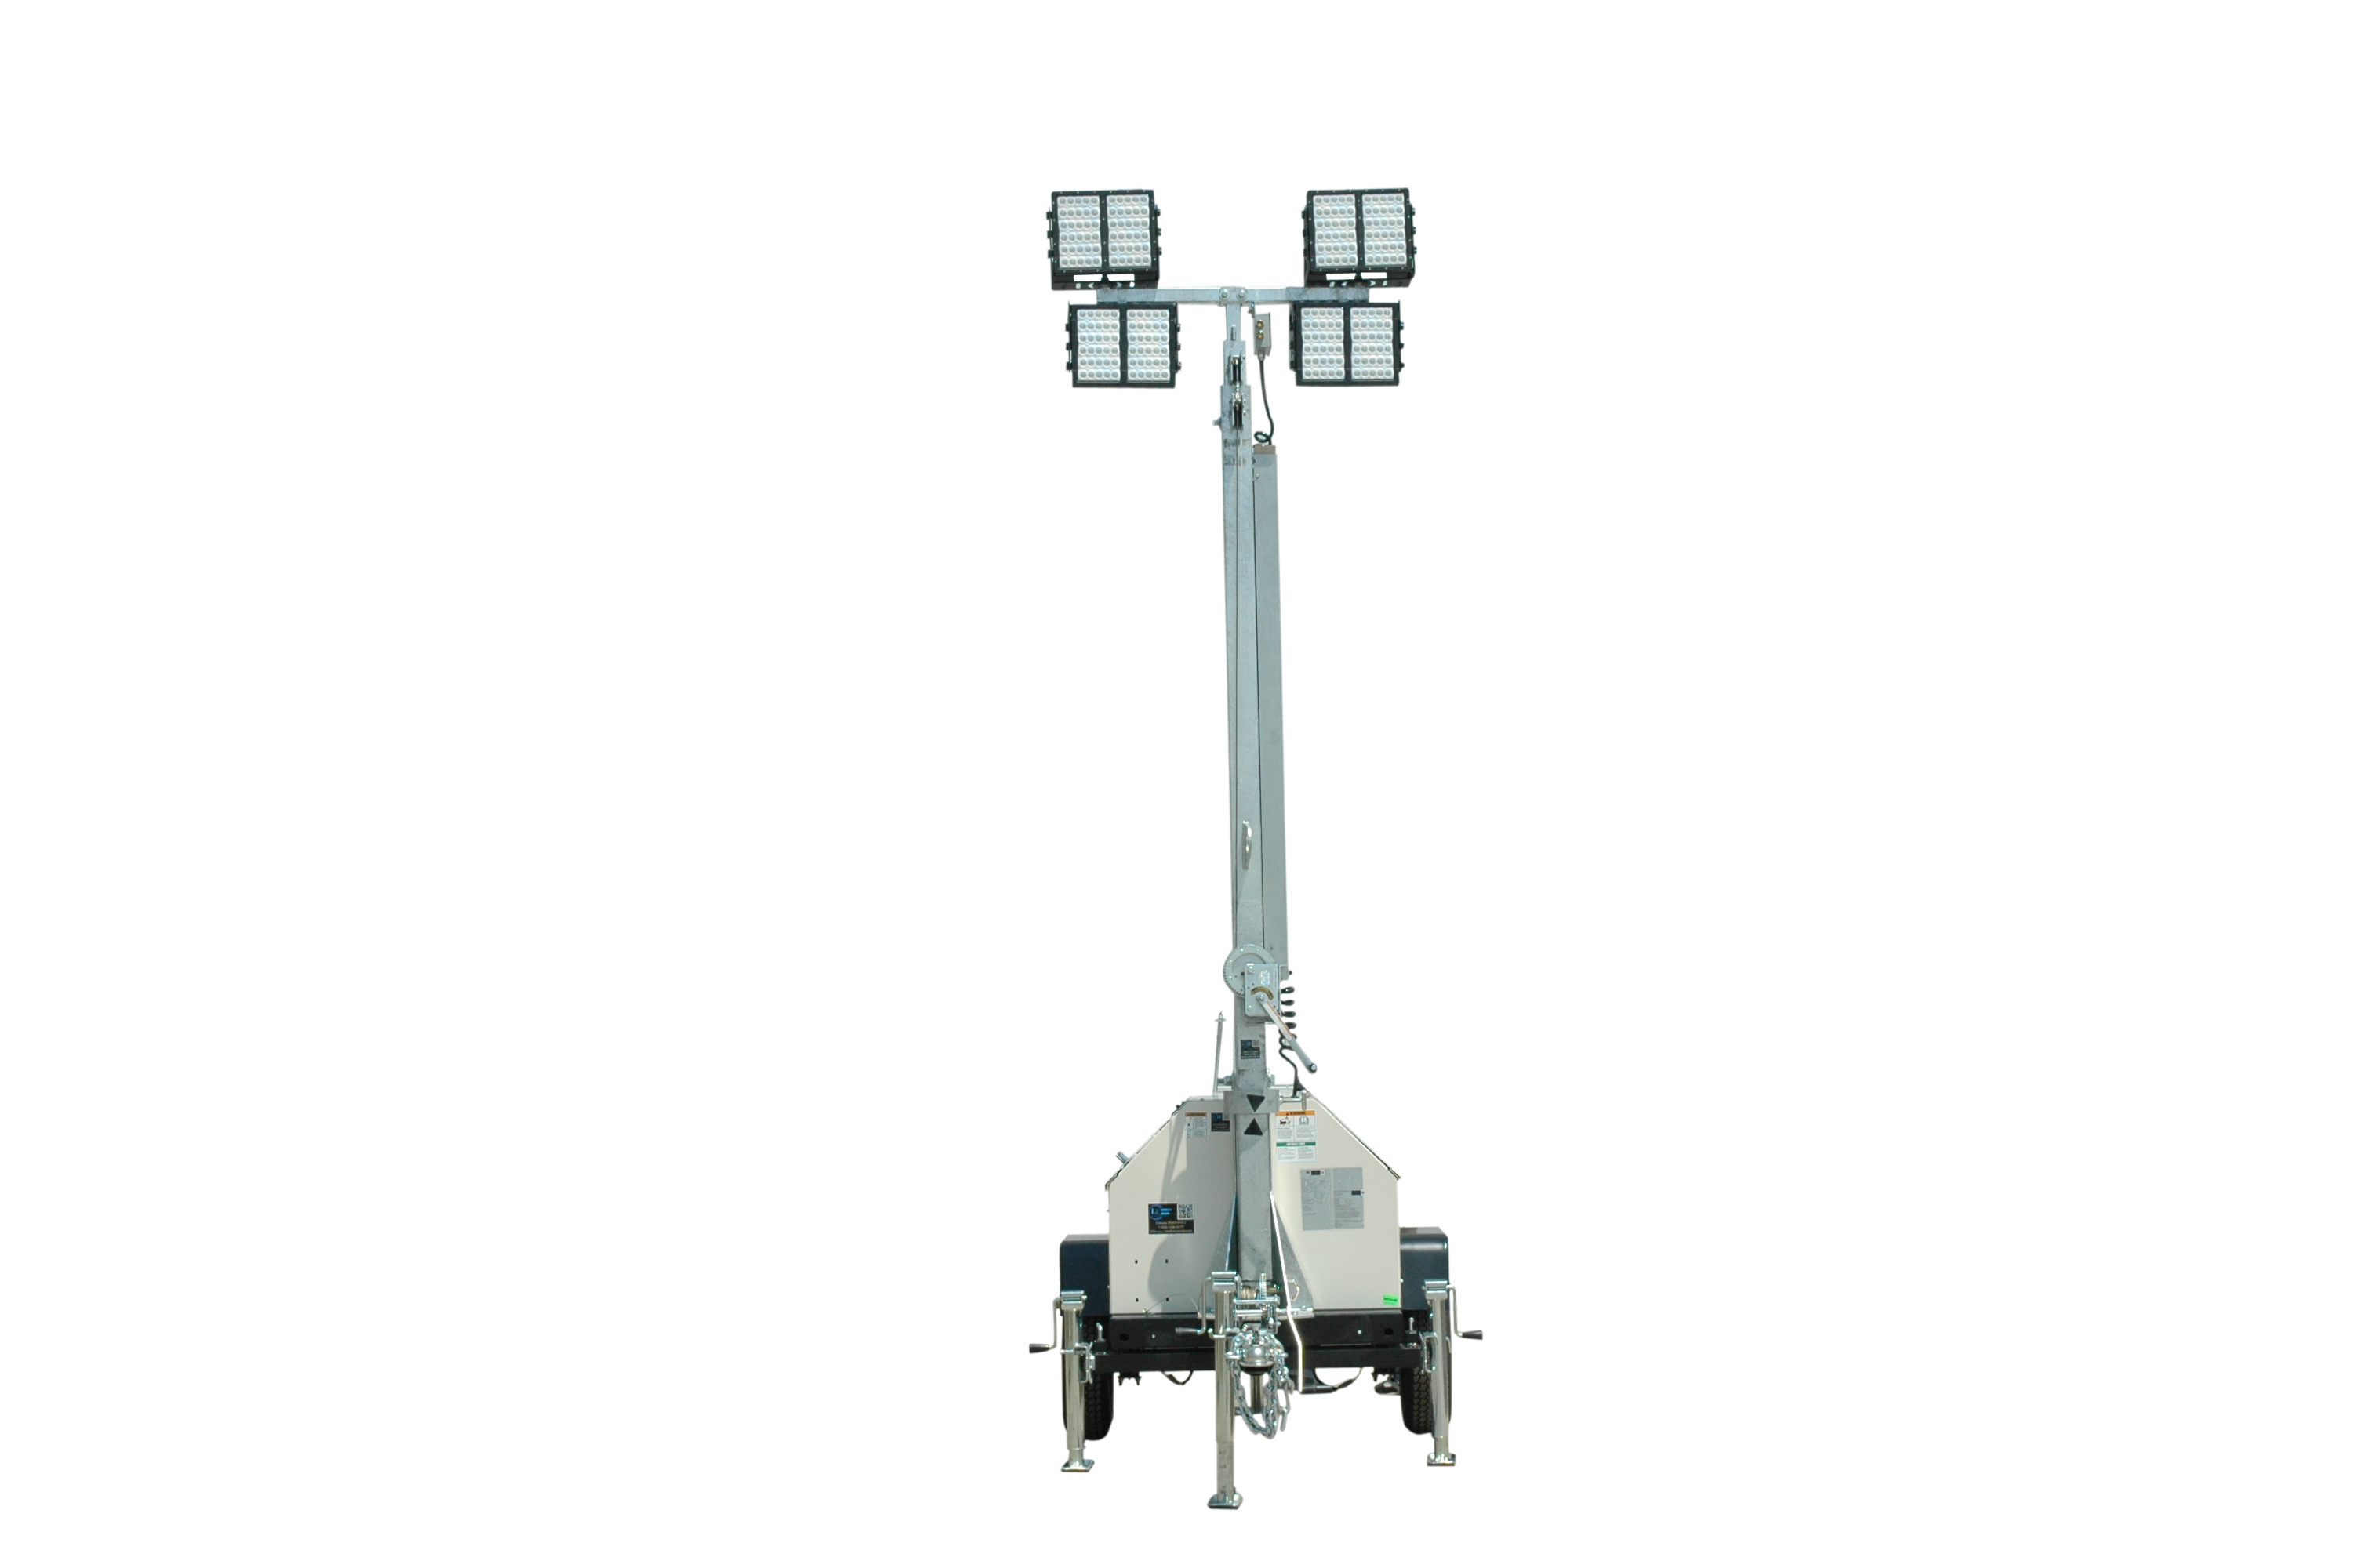 New Mobile Led Light Tower Withsel Powered Generator